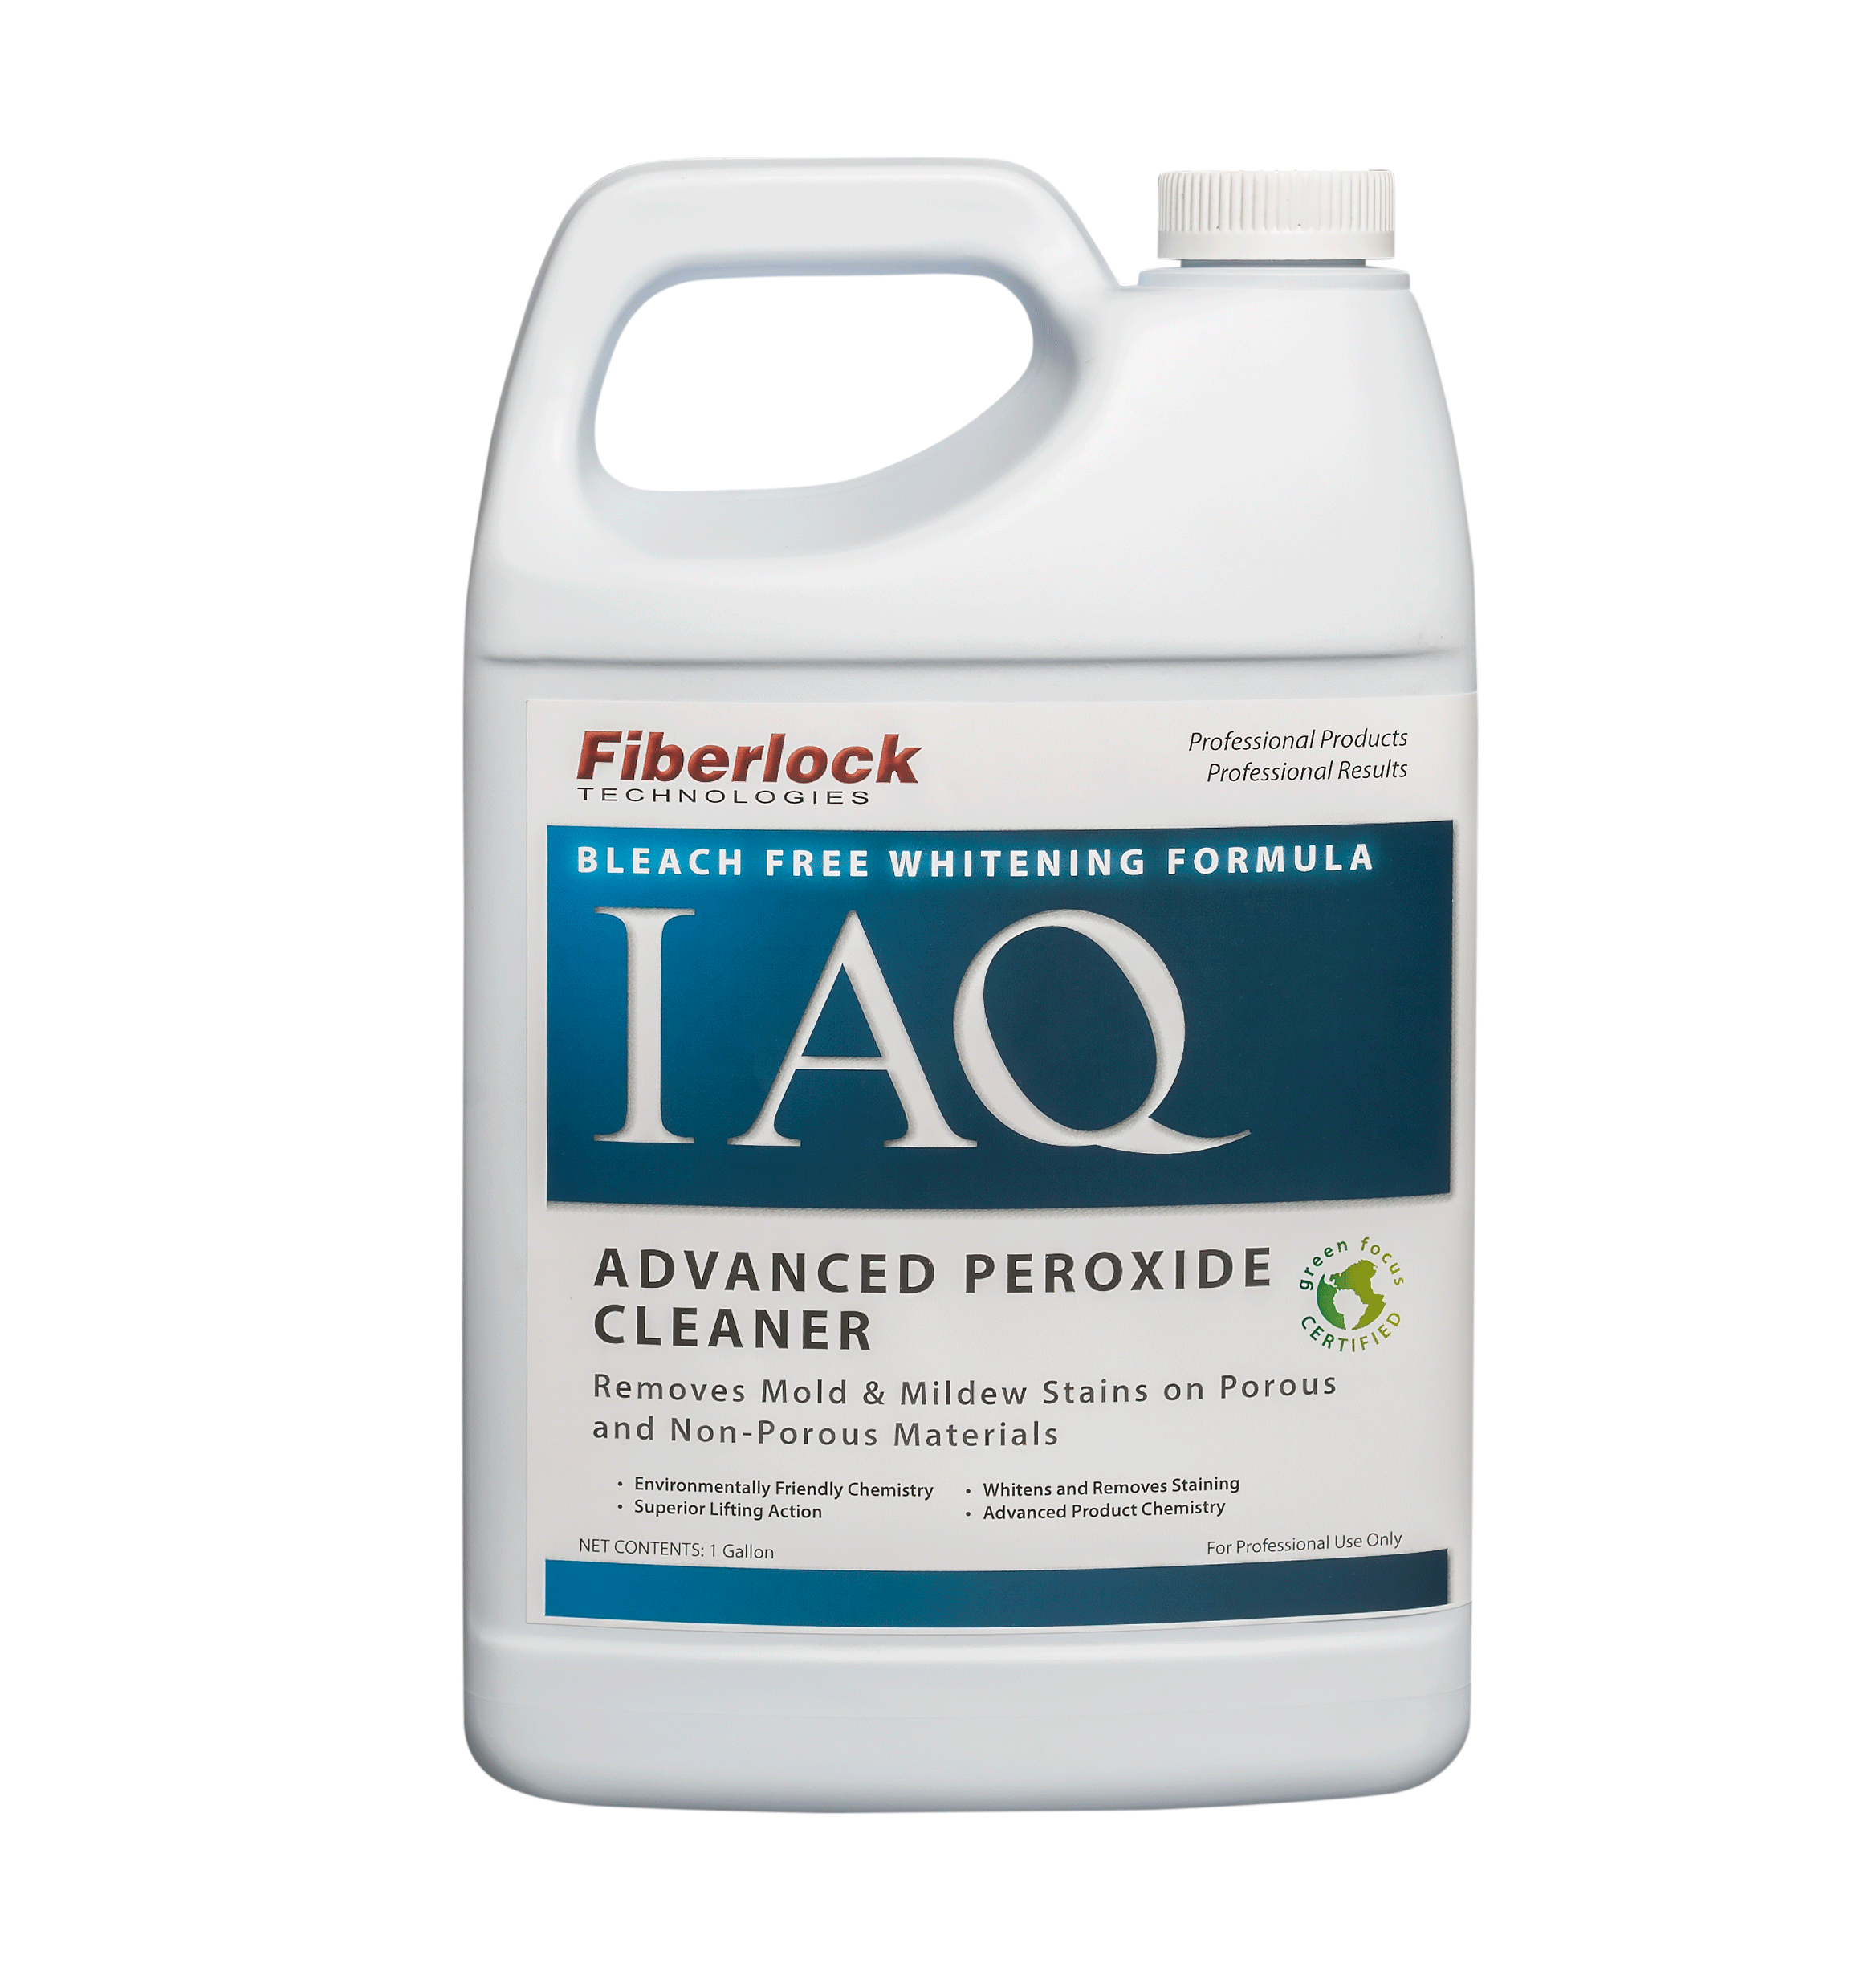 Fiberlock Advanced Peroxide Cleaner - Mold Stain Remover